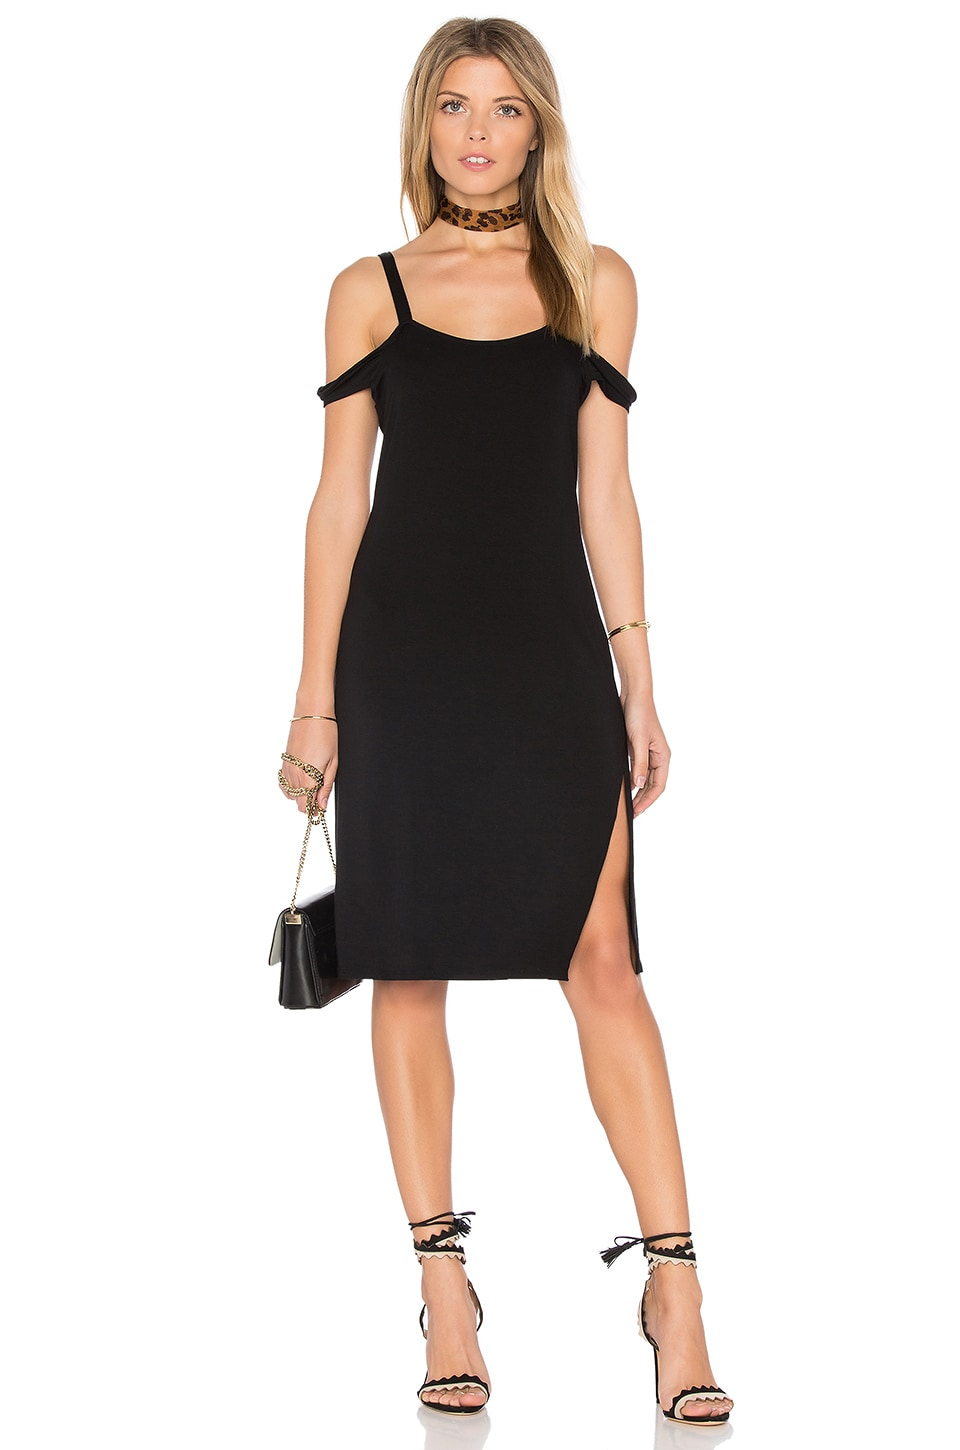 Verkler Cold Shoulder Dress by Feel The Piece